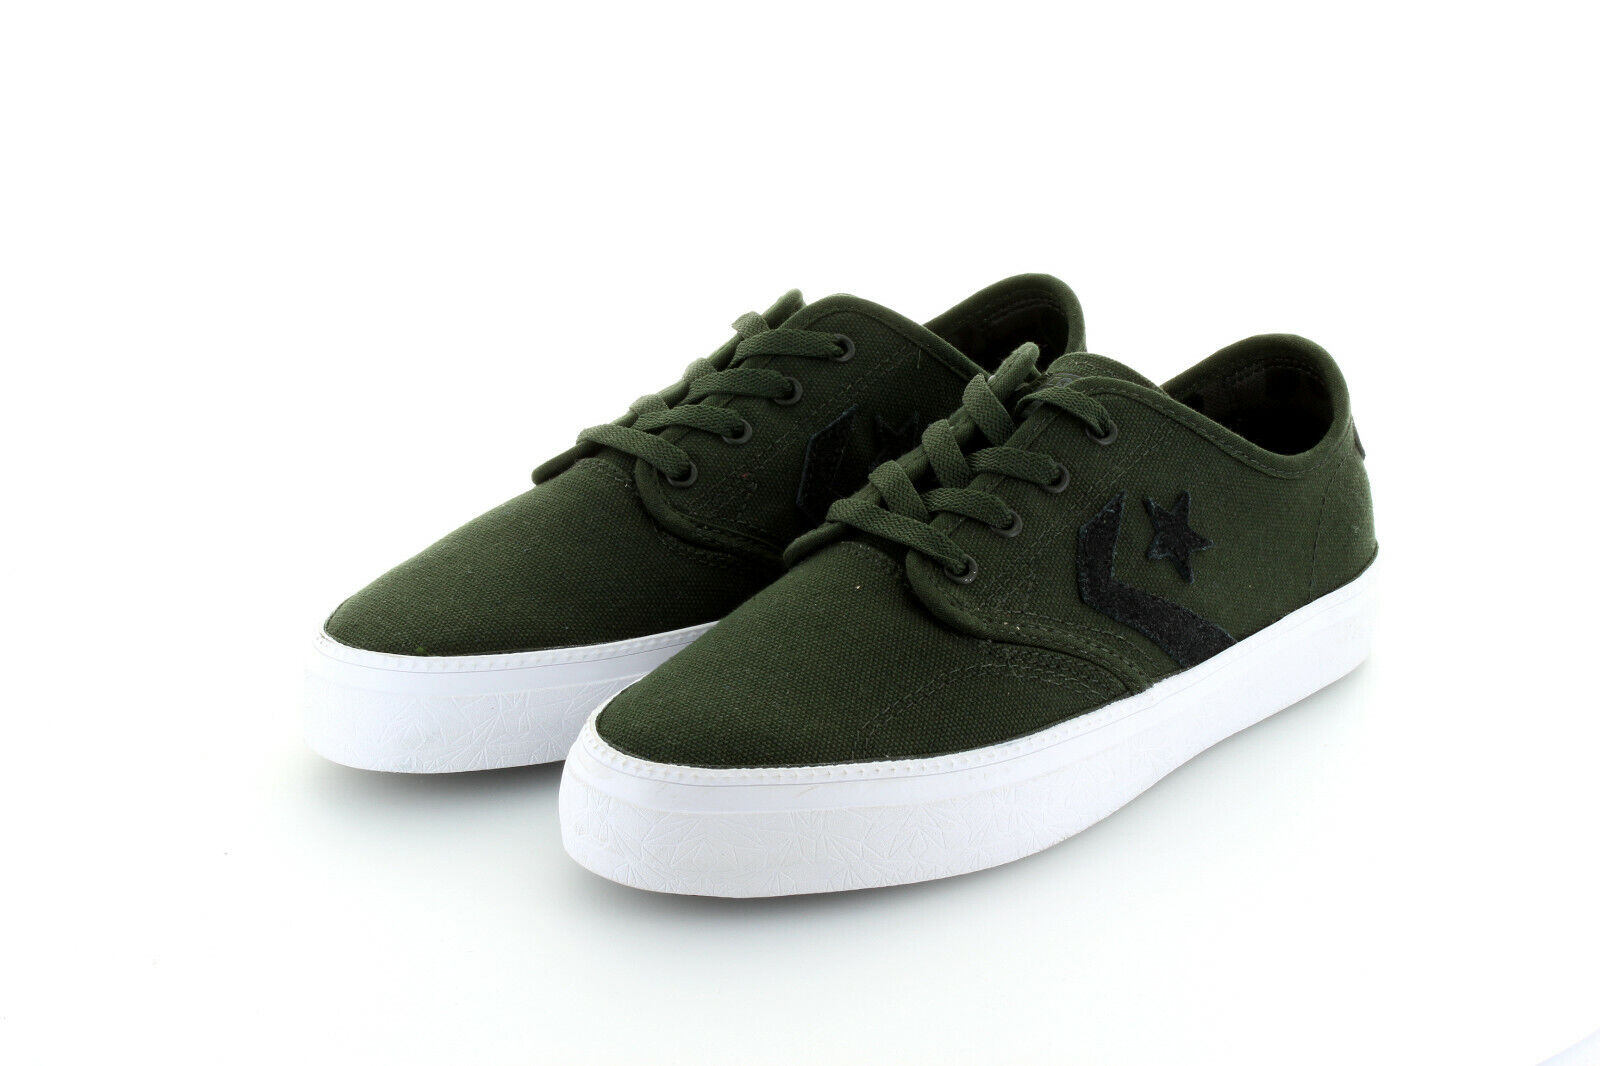 Converse Cons Zakim OX vert ONYX Counter Climate Taille 42,5 US 9